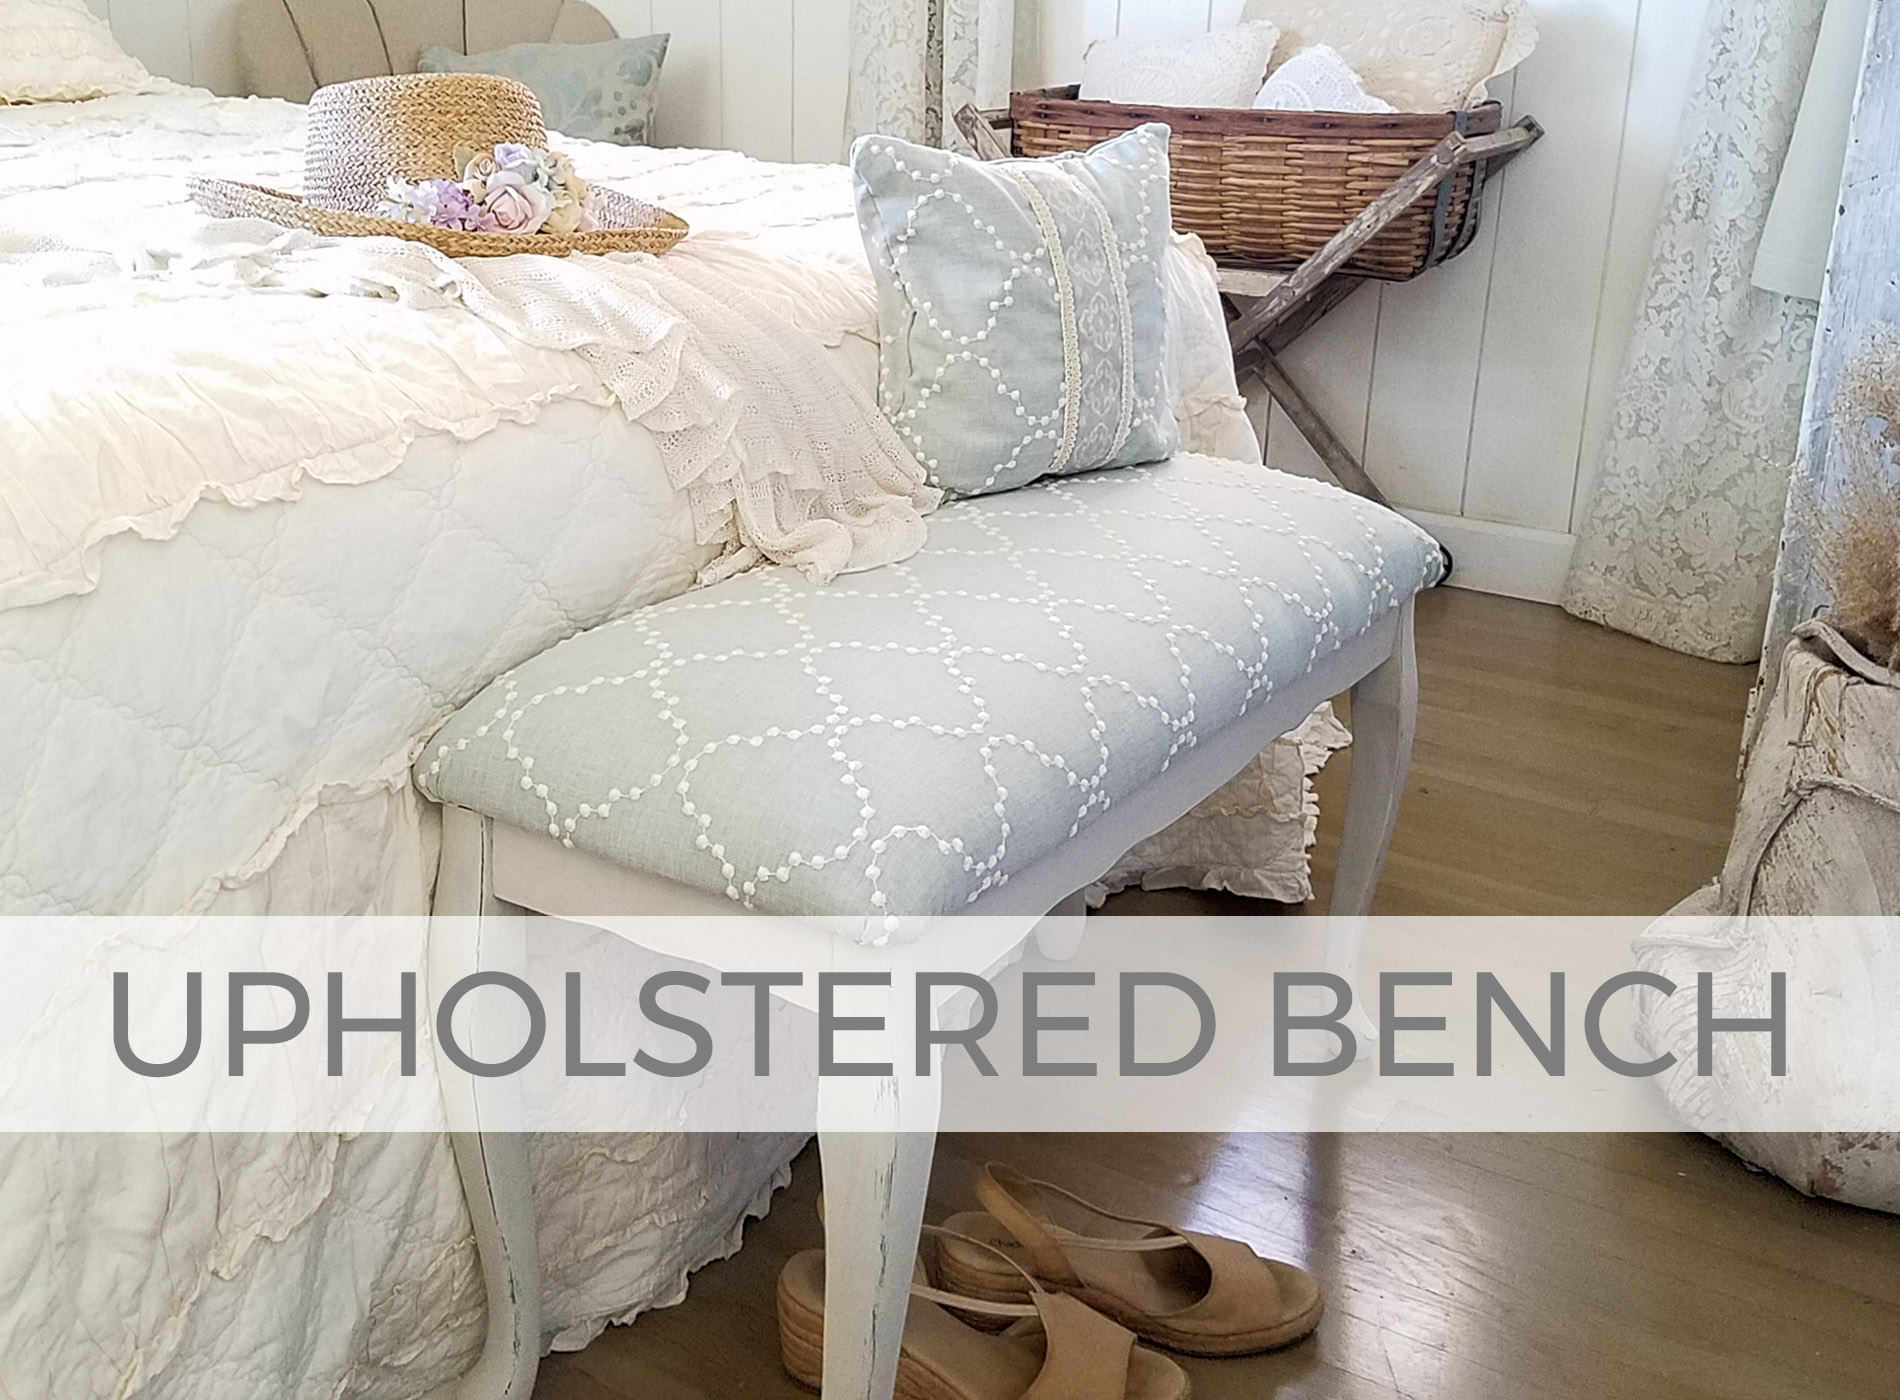 Upholstered Bench by Larissa of Prodigal Pieces | prodigalpieces.com #prodigalpieces